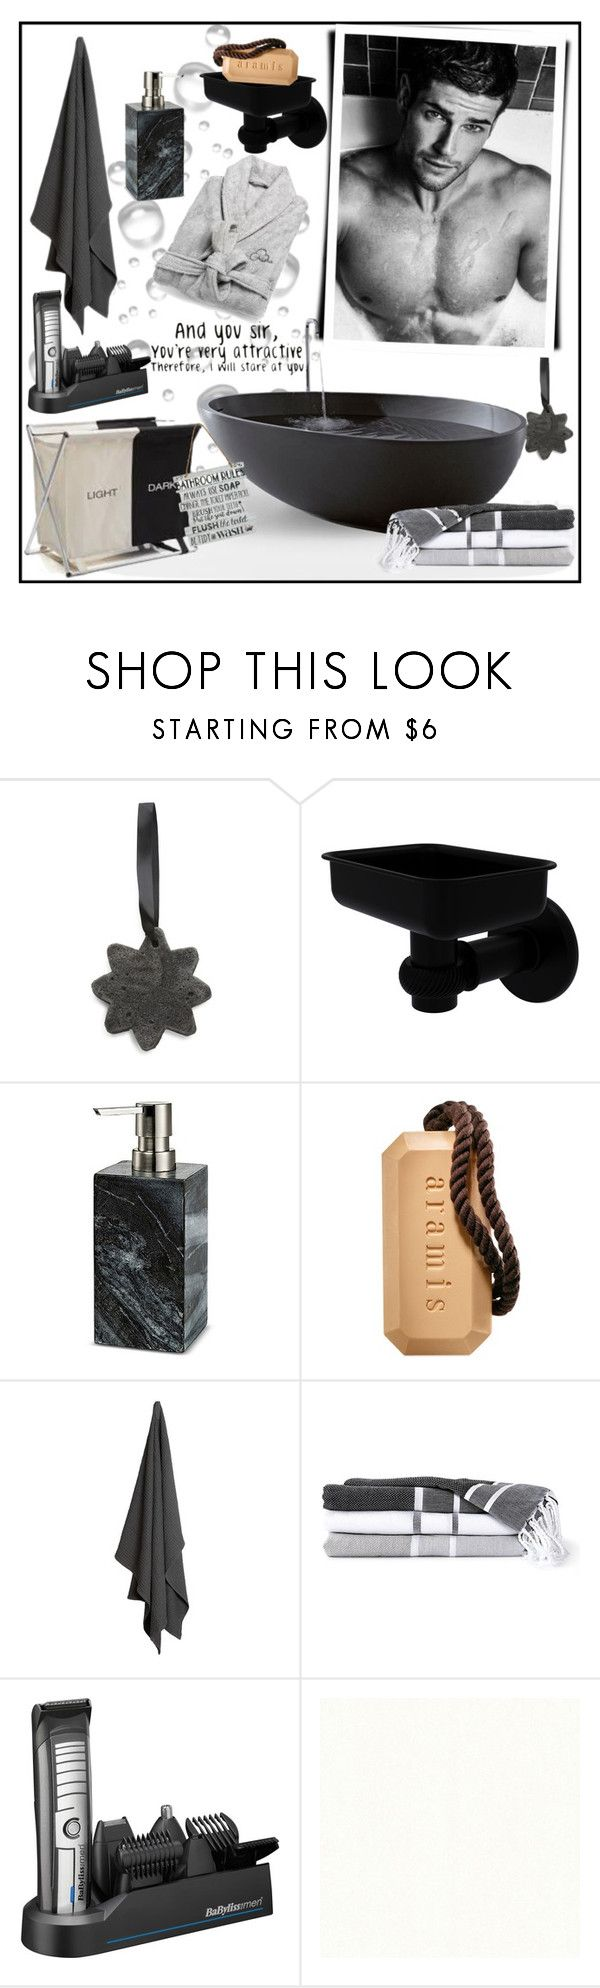 """""""ATTRACTIVE!!!"""" by kskafida ❤ liked on Polyvore featuring Allied Brass, Threshold, Aramis, The Organic Company, BaByliss, men's fashion and menswear"""